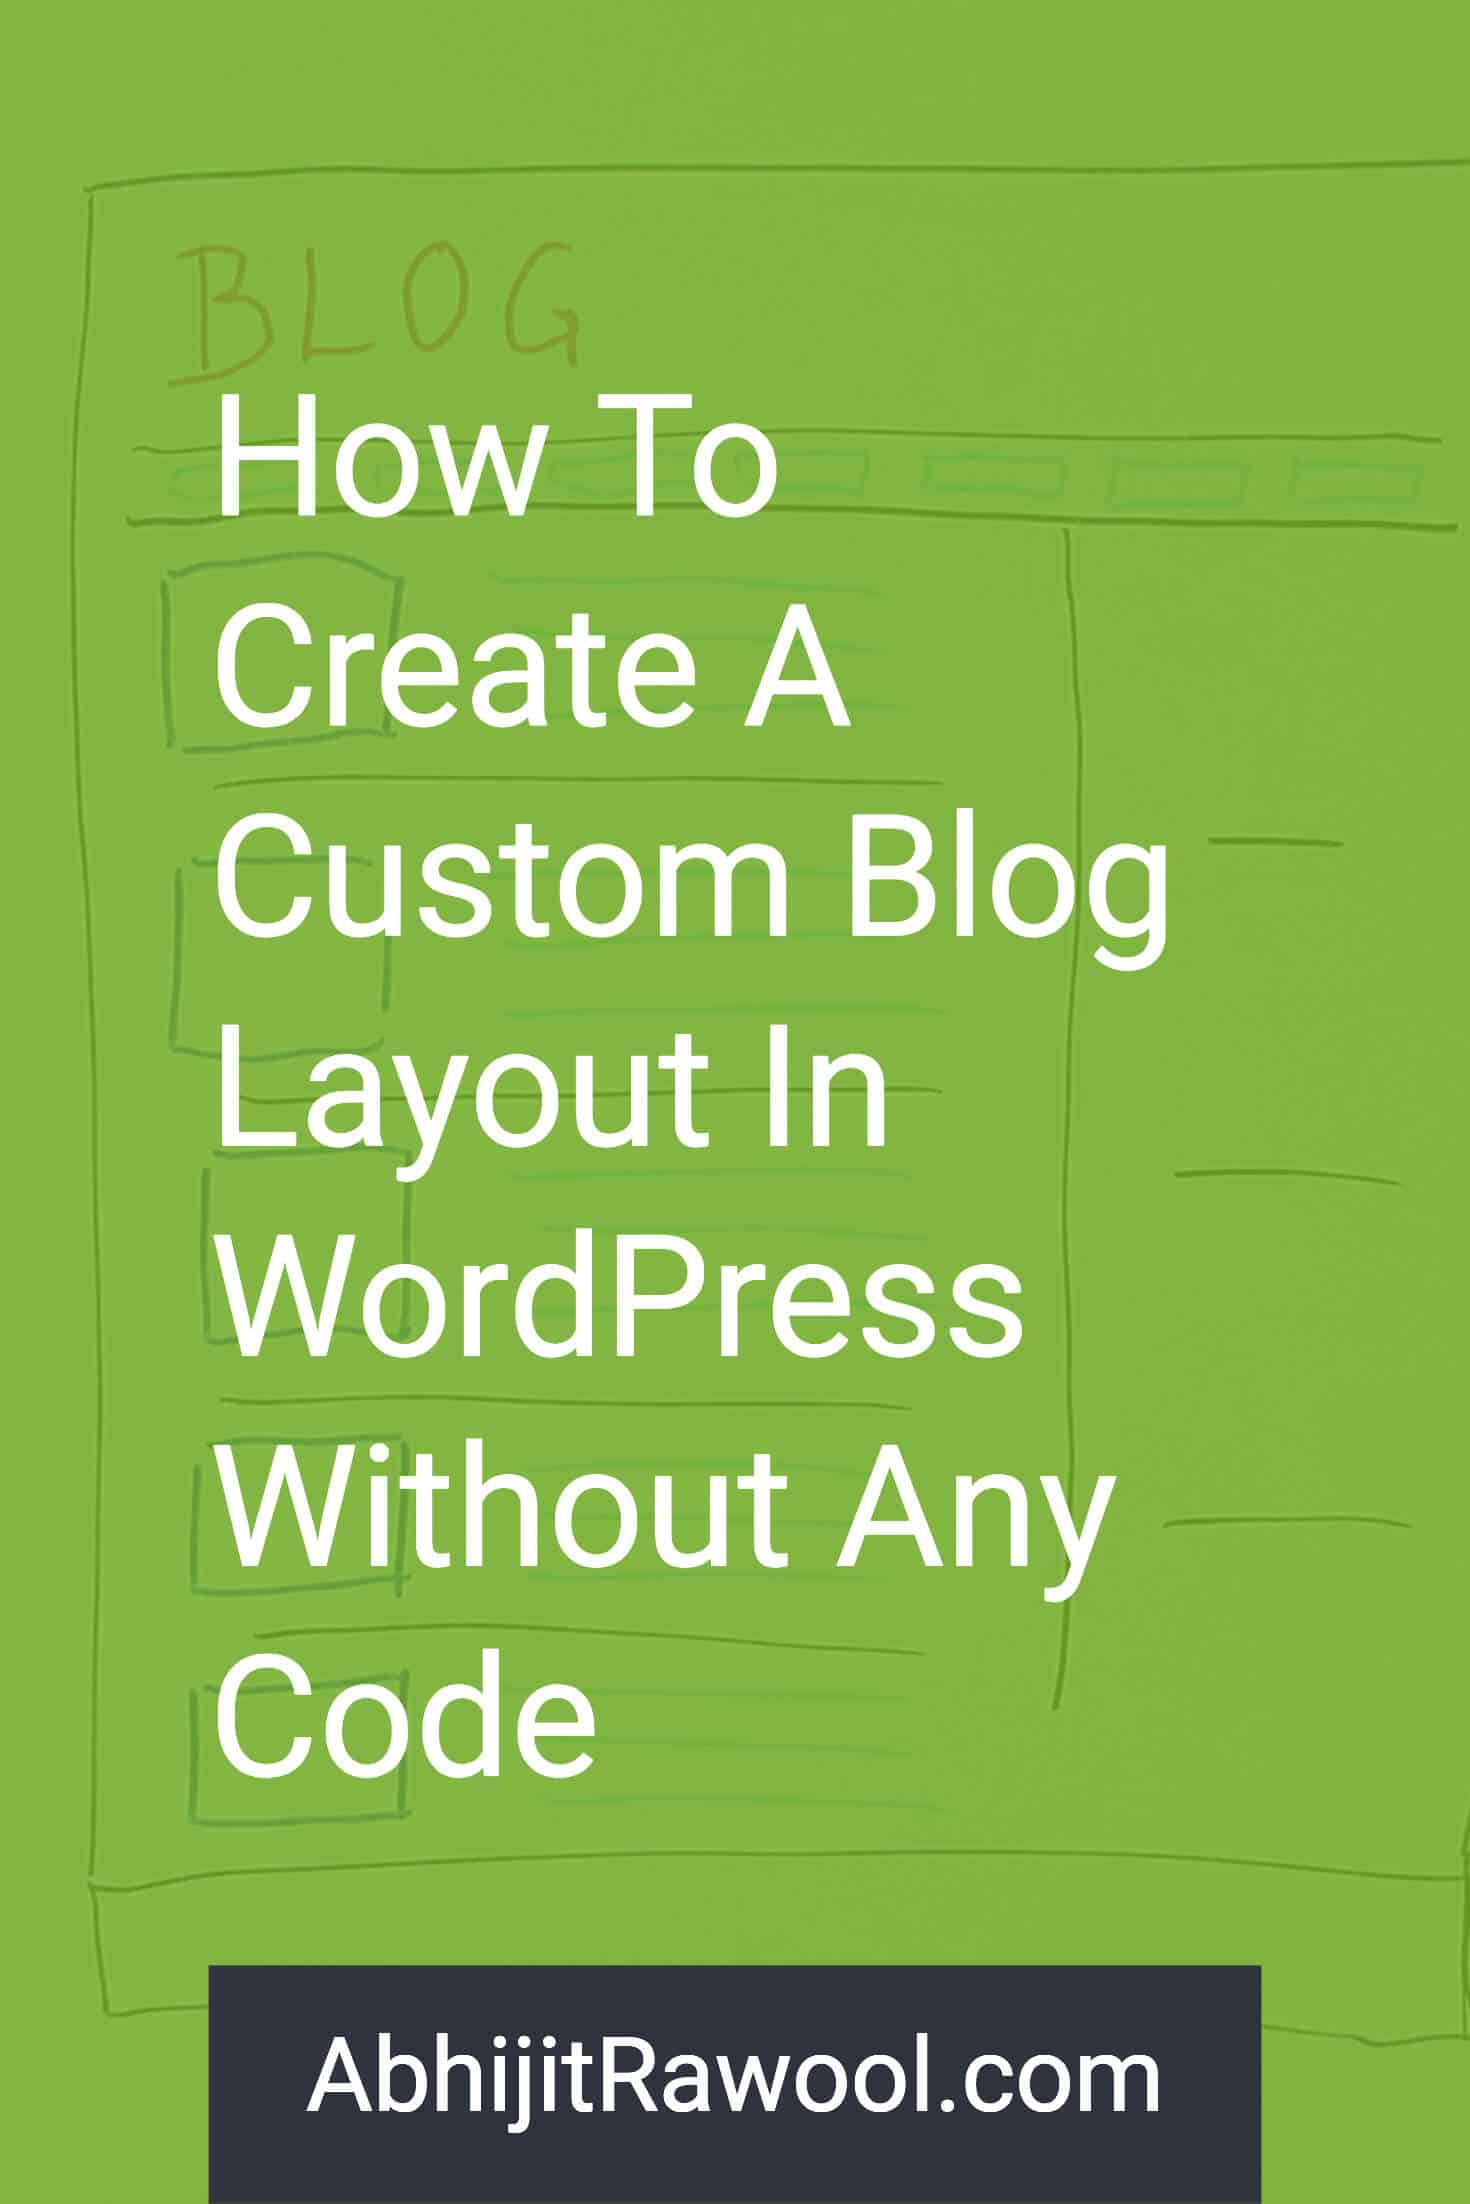 Create Custom Blog Layout in WordPress